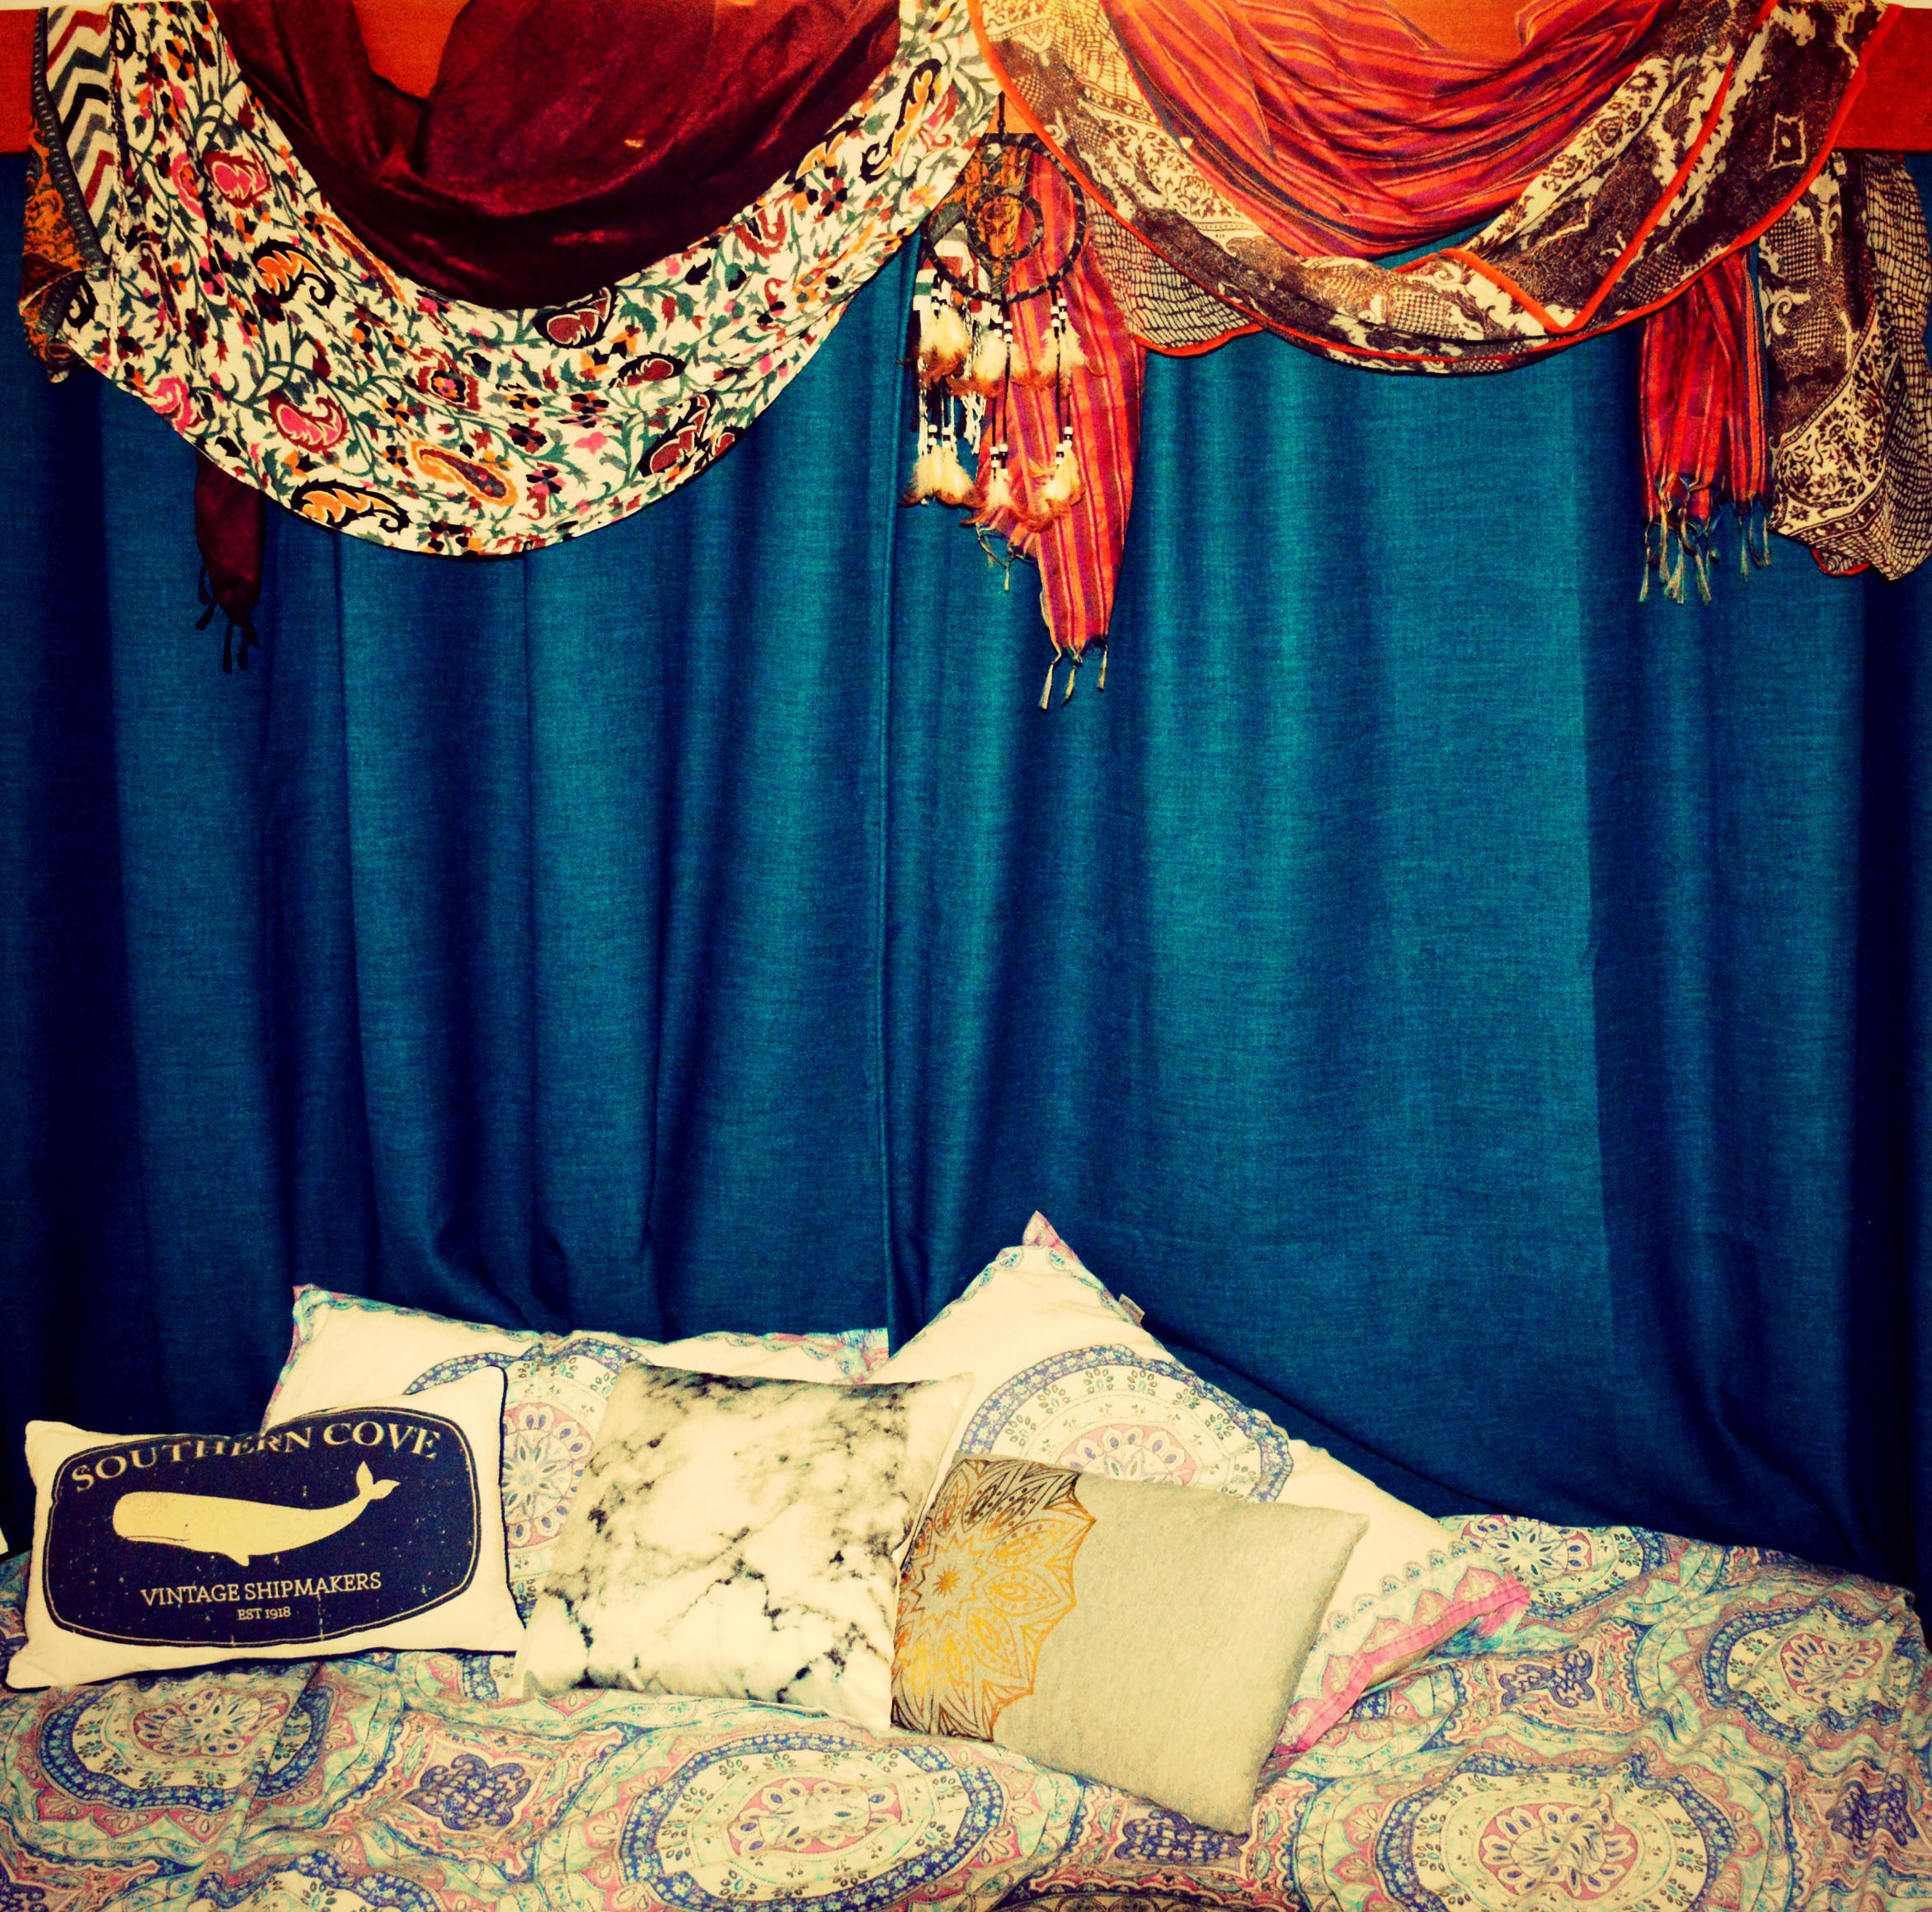 9 Diy Boho Bedroom Hacks Using Scarves